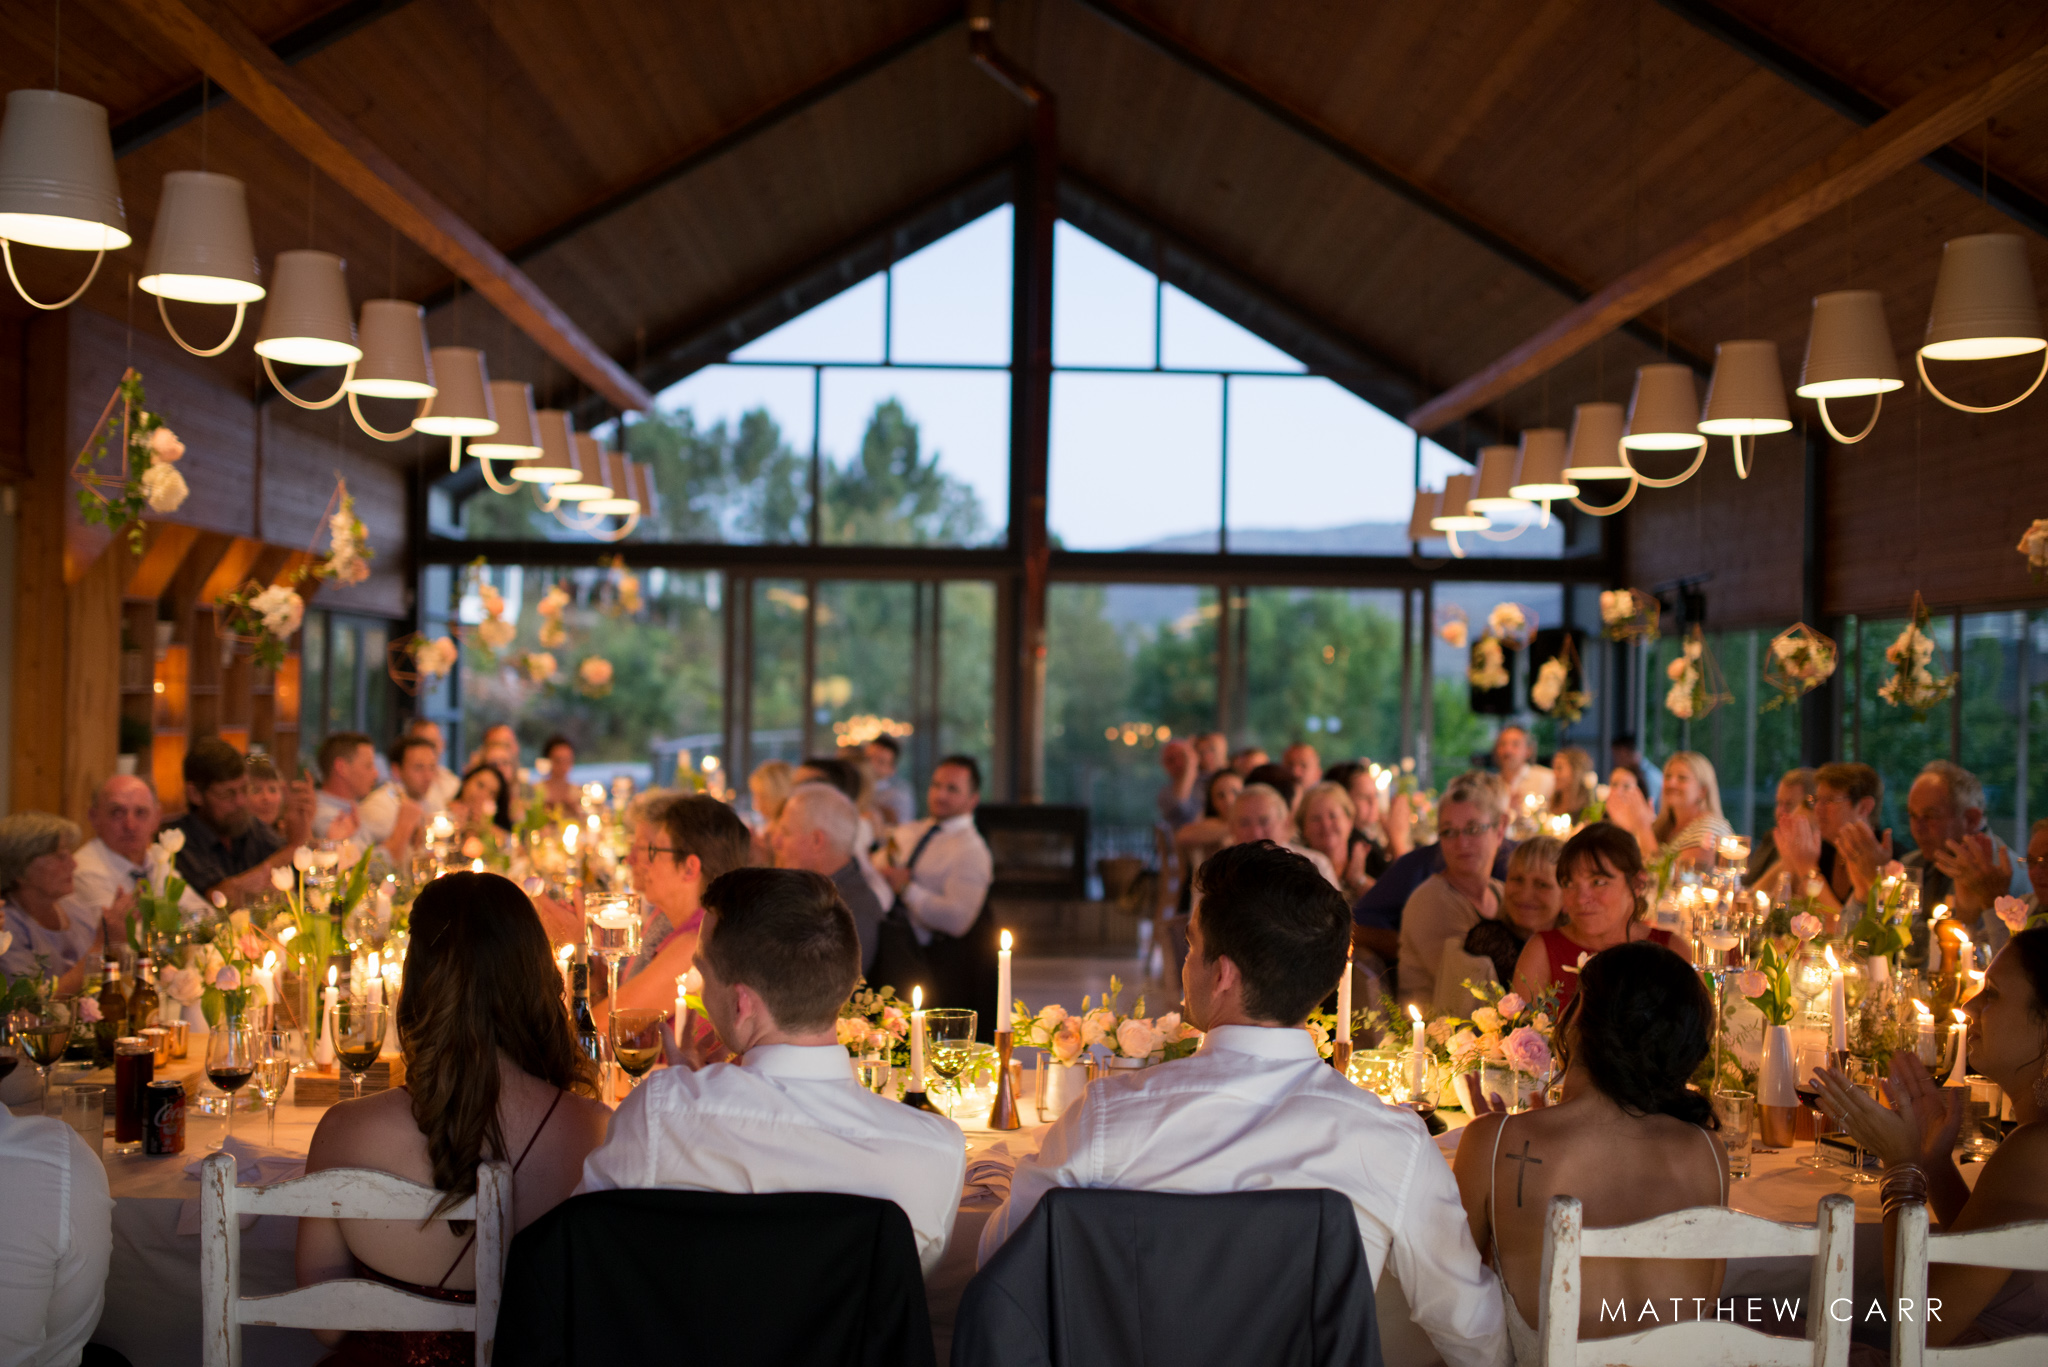 reception - low res (for viewing, social meida) (15 of 147).JPG